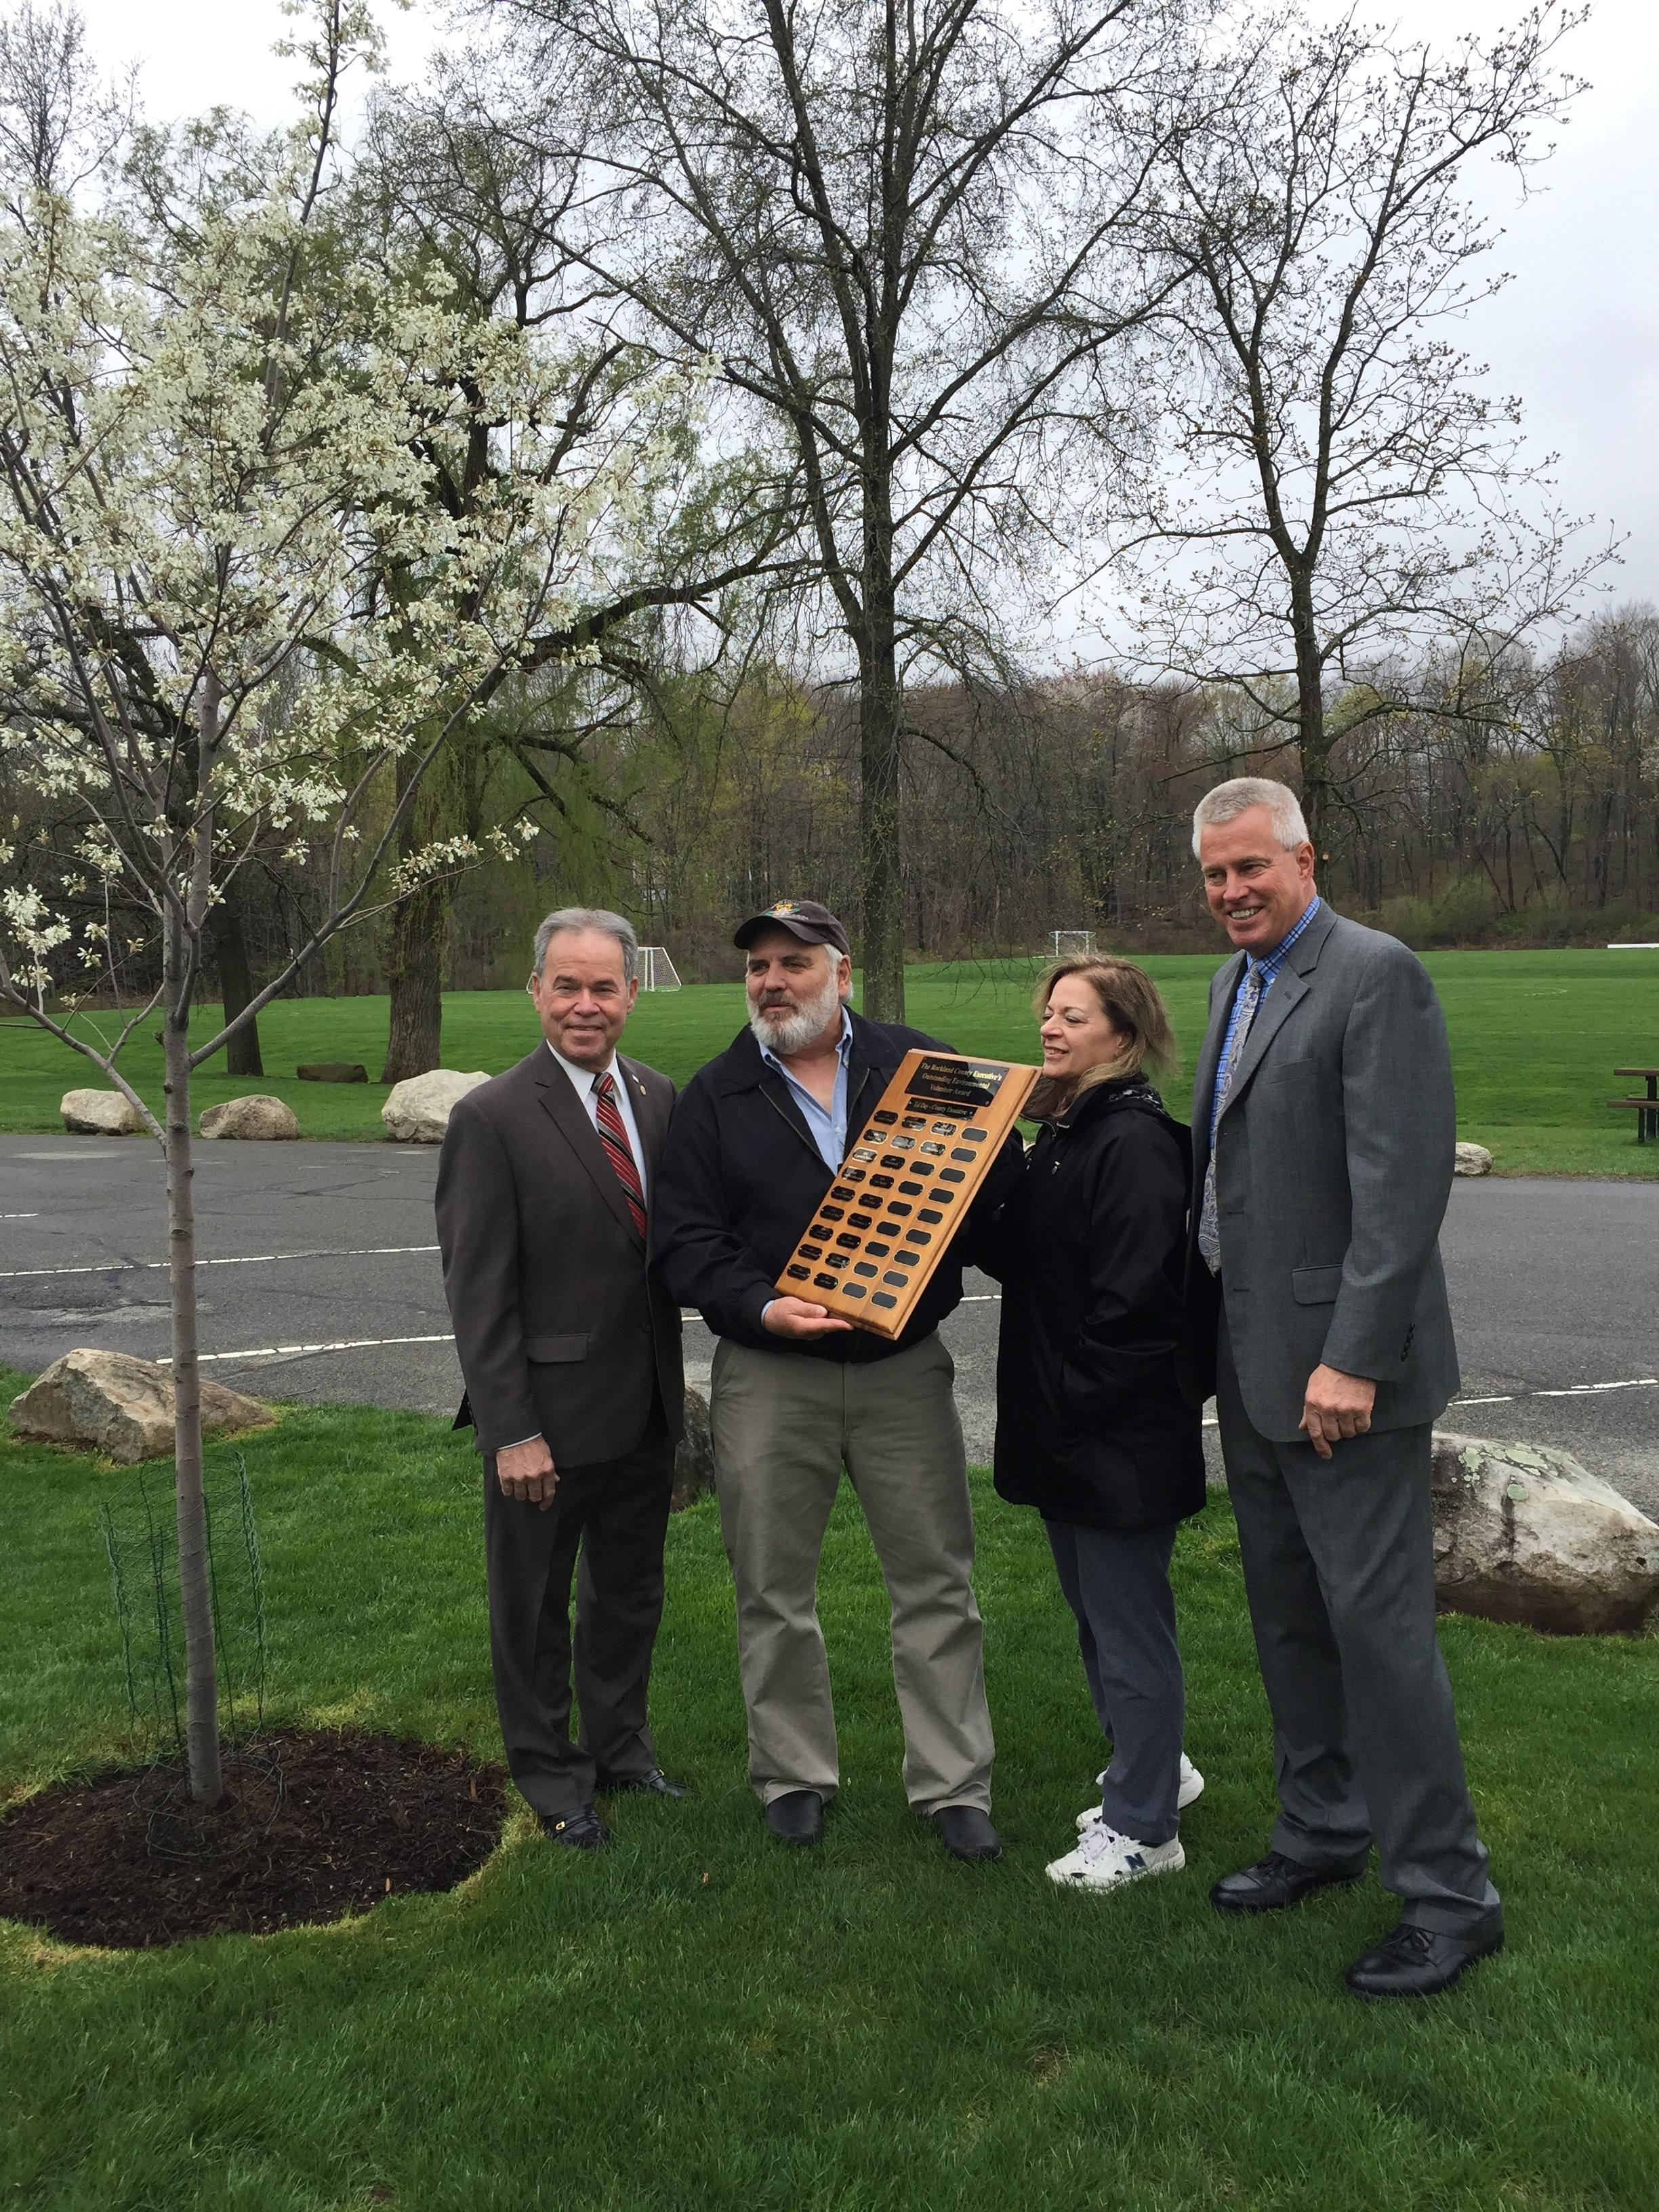 County Executive dedicates tree honoring winner of 20th Annual Outstanding Environmental Volunteer Award